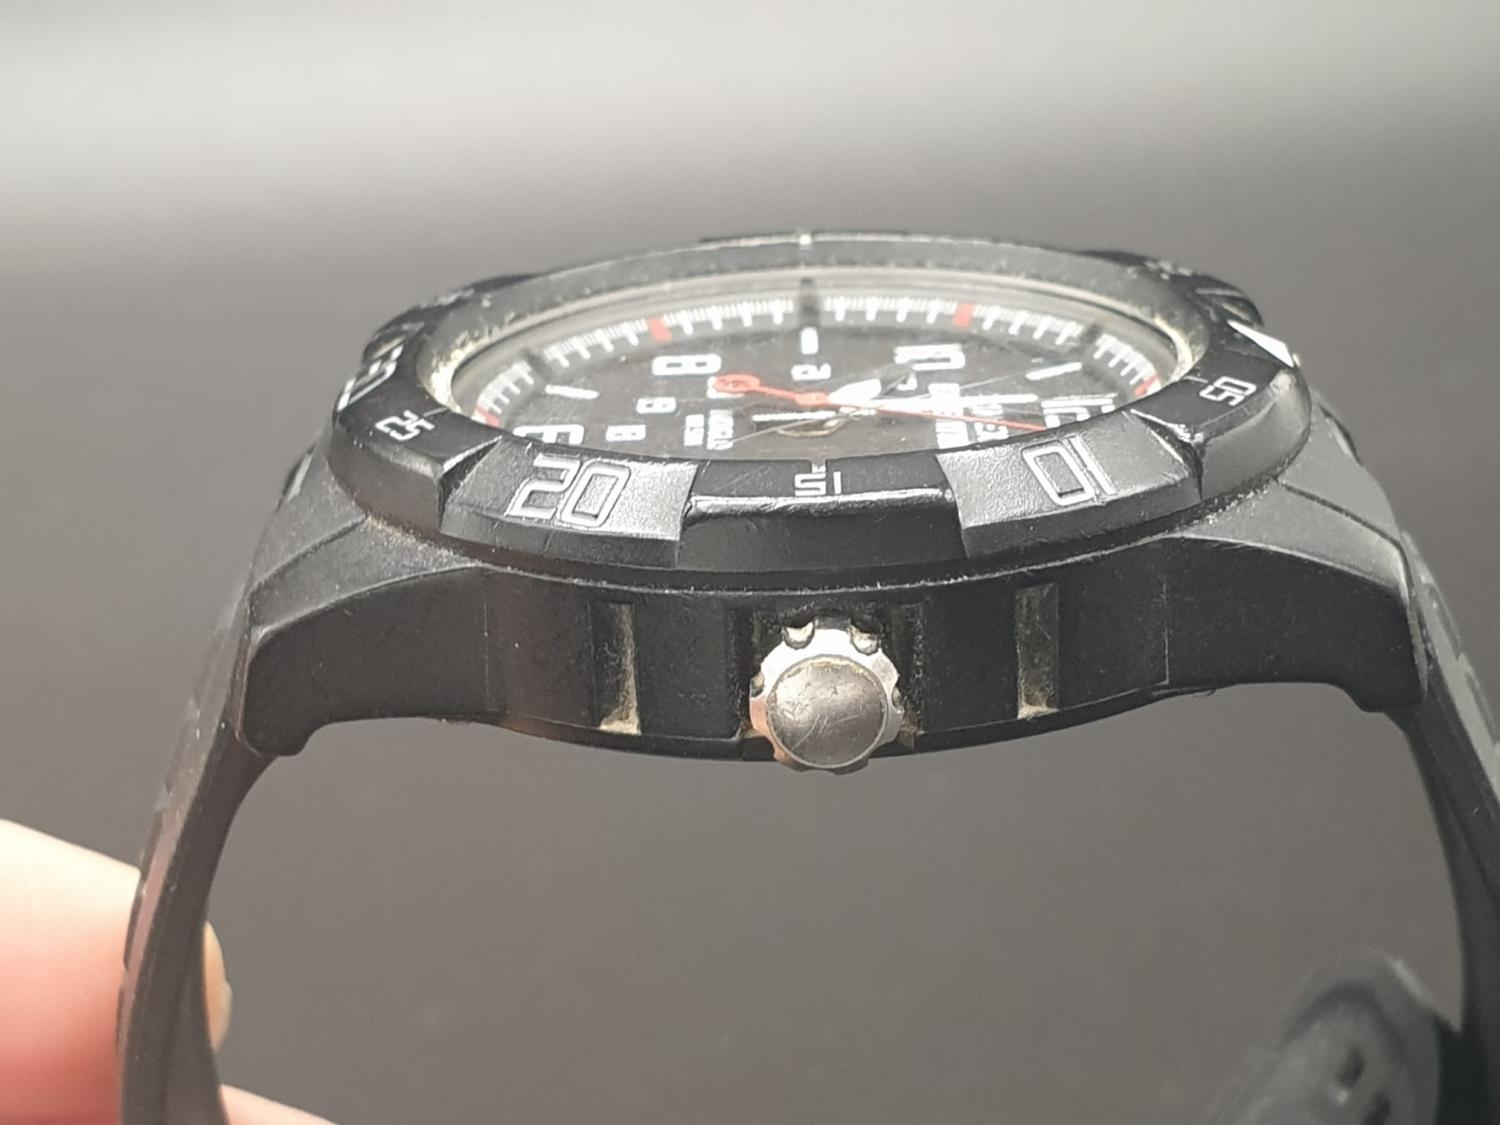 Timex Expedition Watch. Black rubber strap. Black dial. As found. - Image 9 of 9